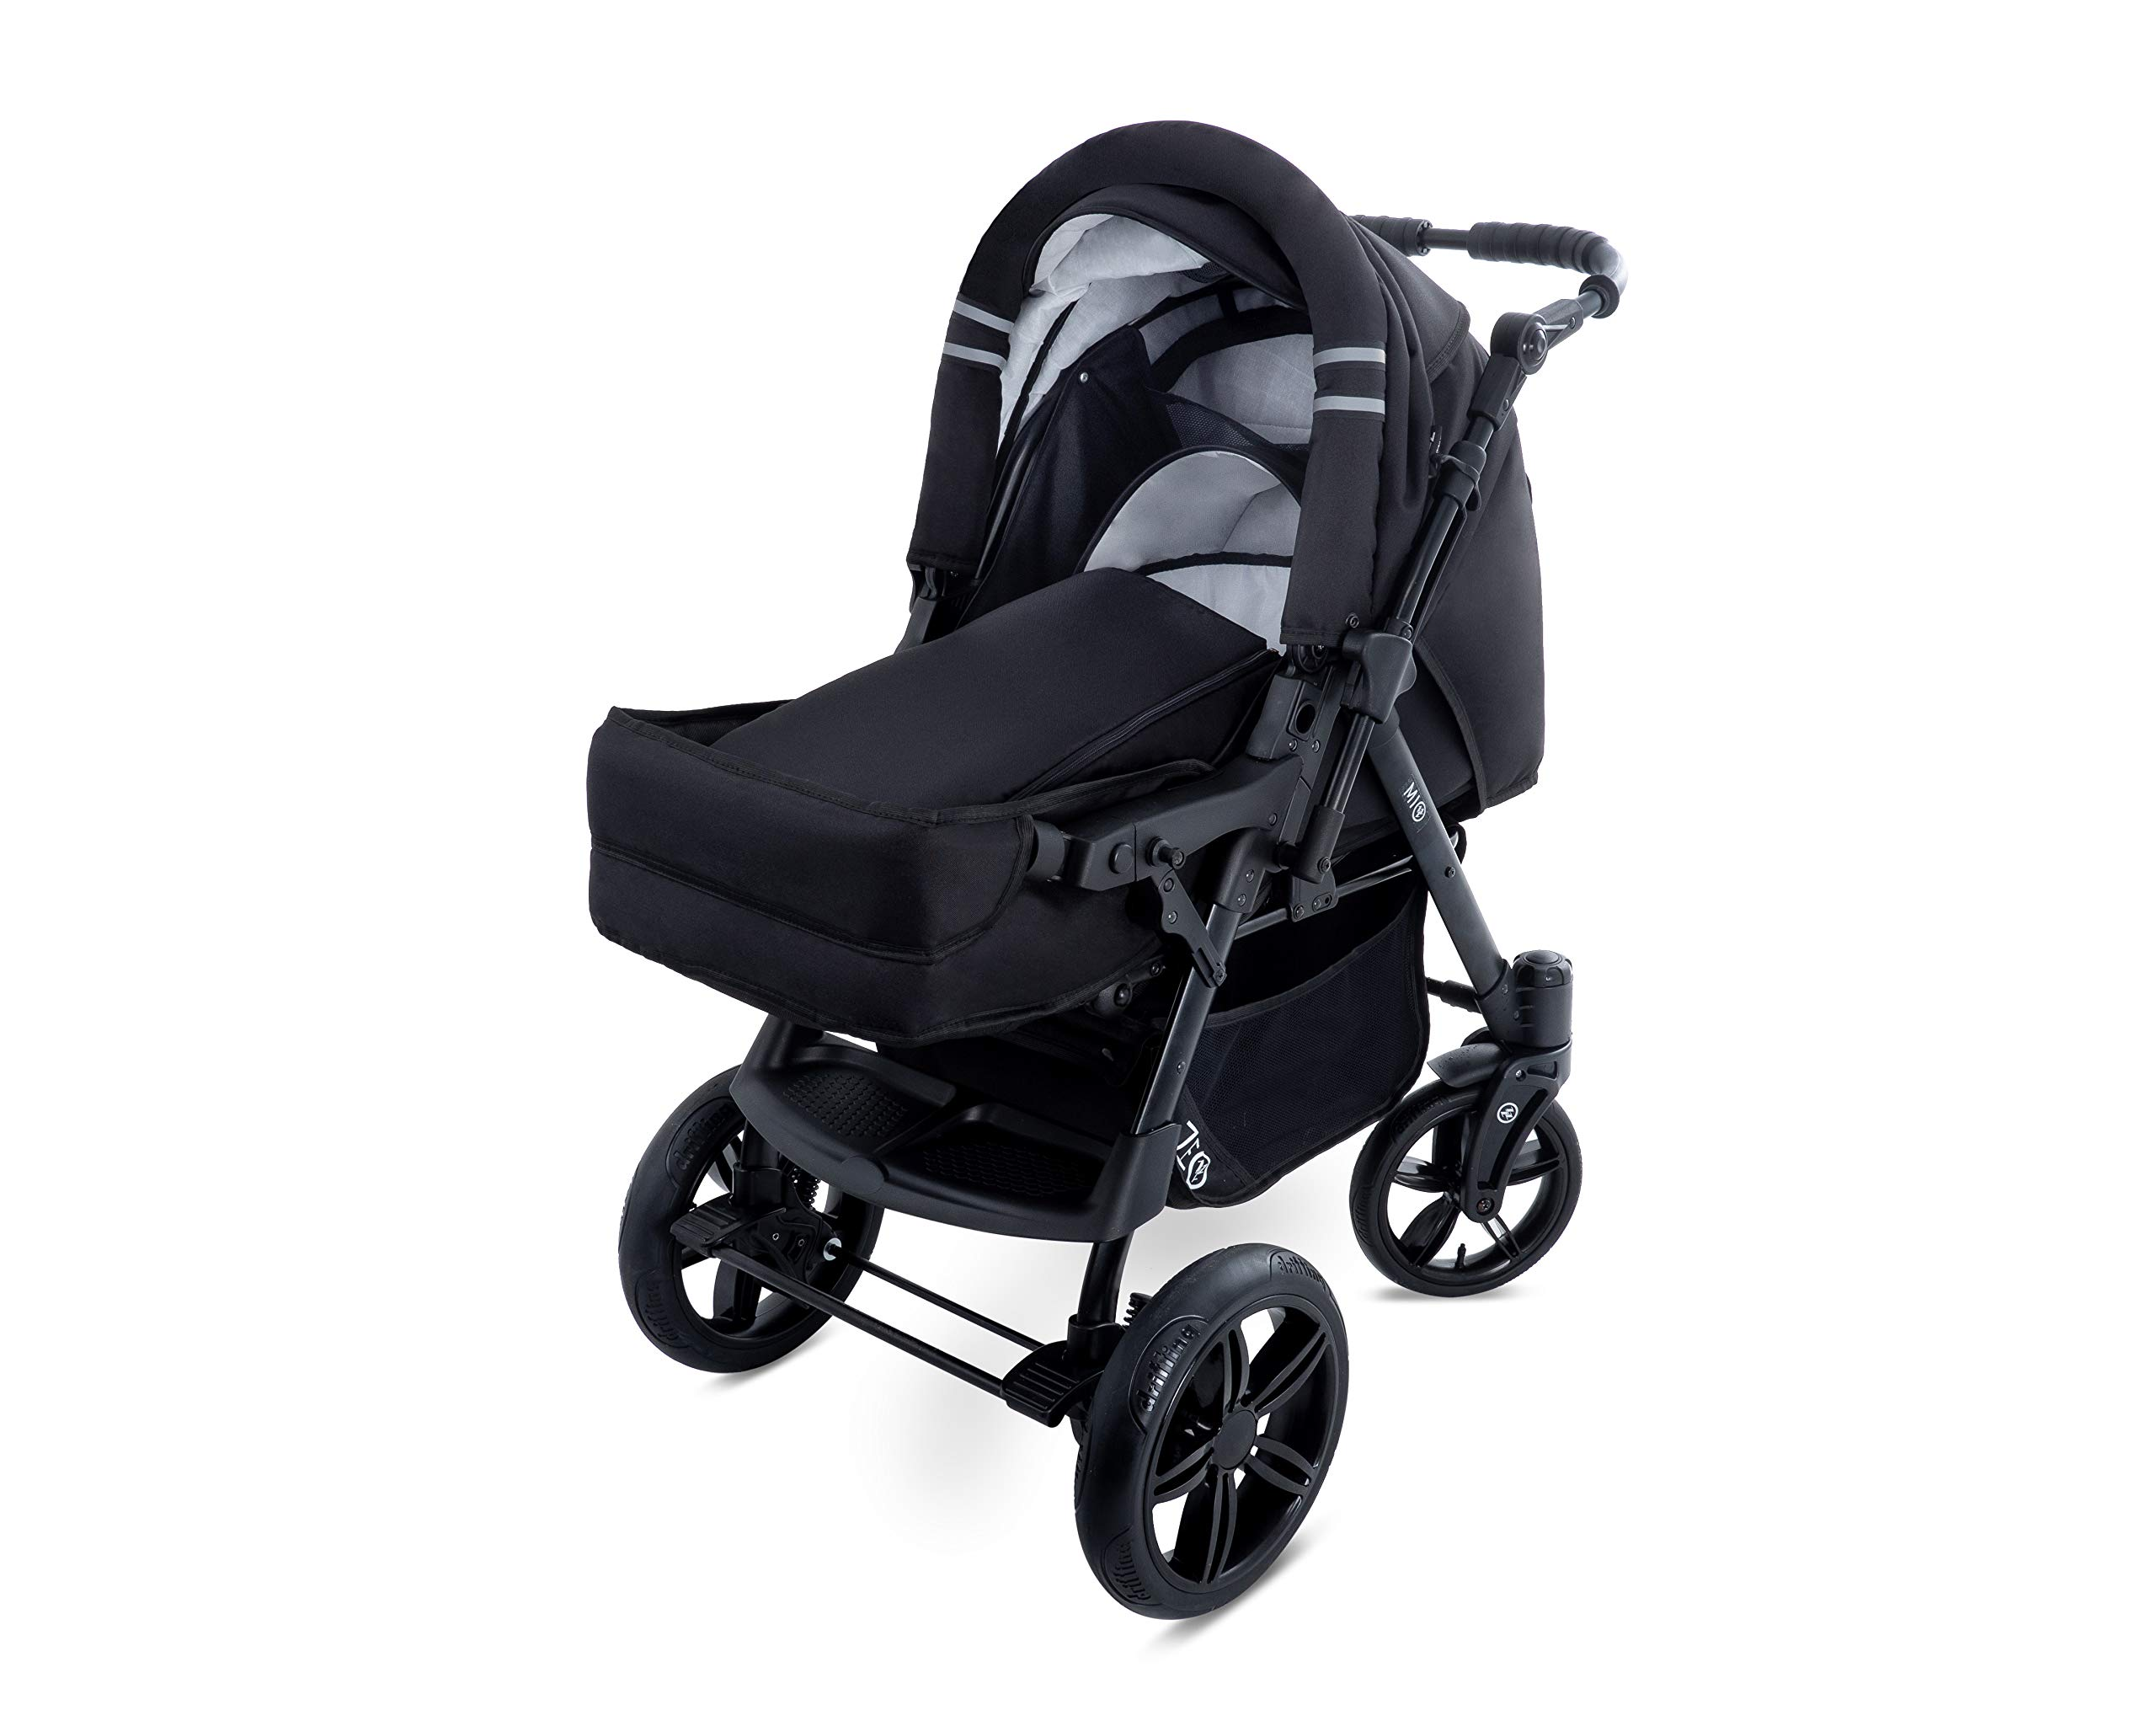 Baby Pram Zeo Mio 3in1 Set - All You Need! carrycot Gondola Buggy Sport Part Pushchair car seat (M1)  3 in 1 combination stroller complete set, with reversible handle to the buggy, child car seat or baby carriage Has 360 ° swiveling wheels, two-fold suspension, four-stage backrest, five-position adjustable footrest and a five-point safety belt The stroller can be easily converted into other functions and easy to transport 5